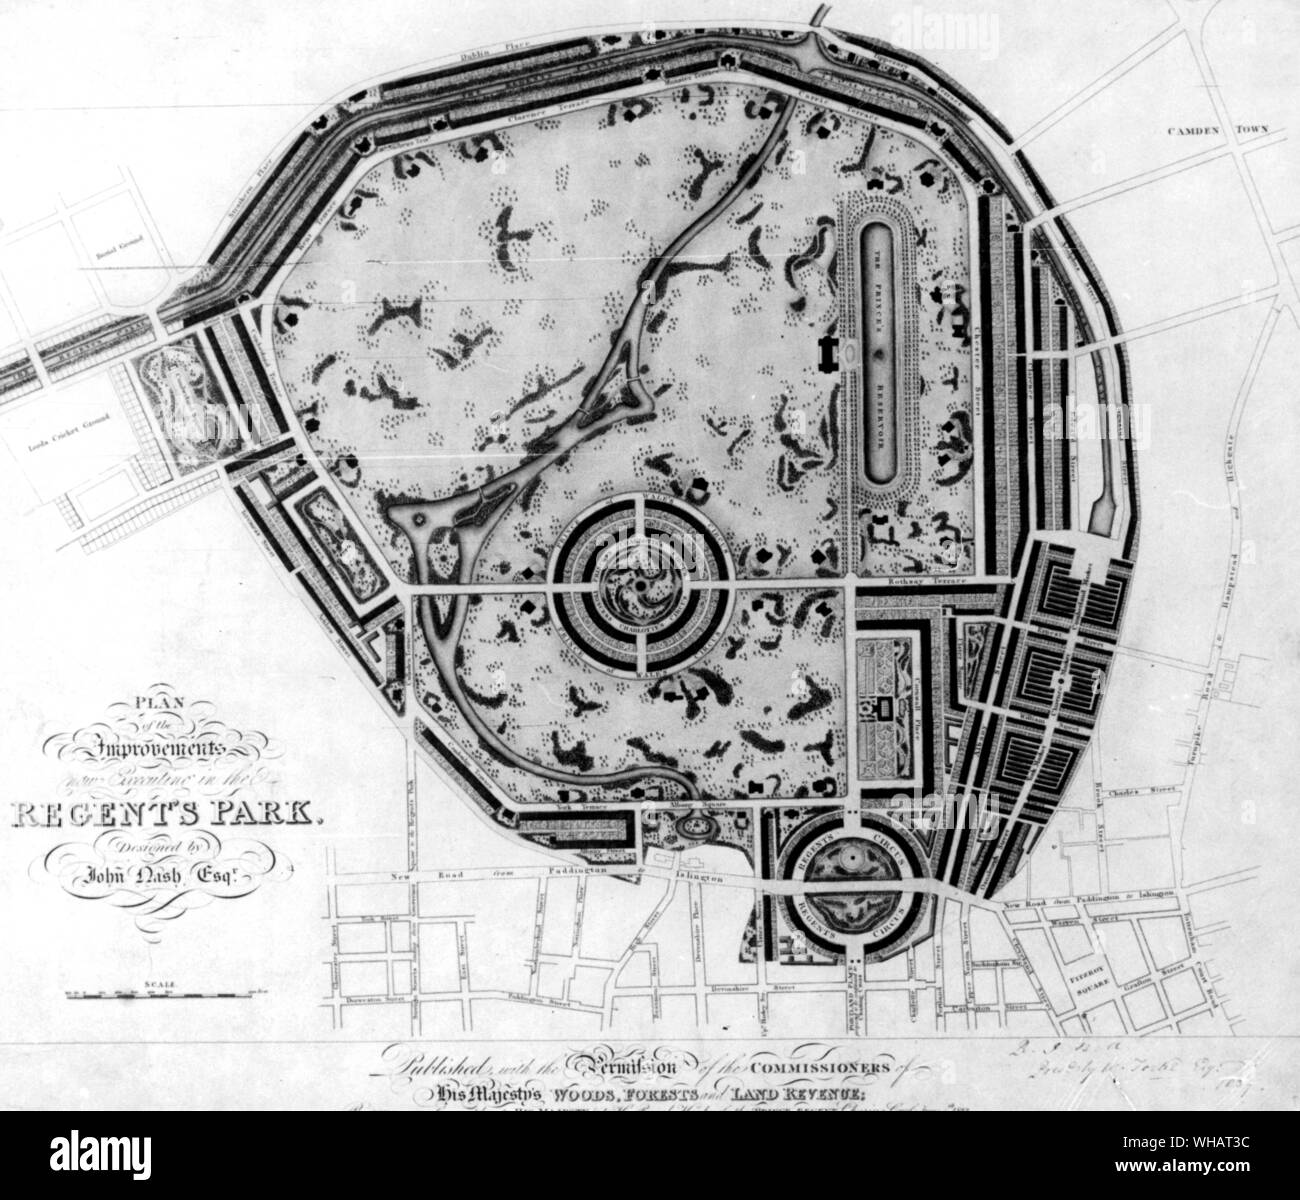 Plan of the Improvements of Regents Park . London. Stock Photo